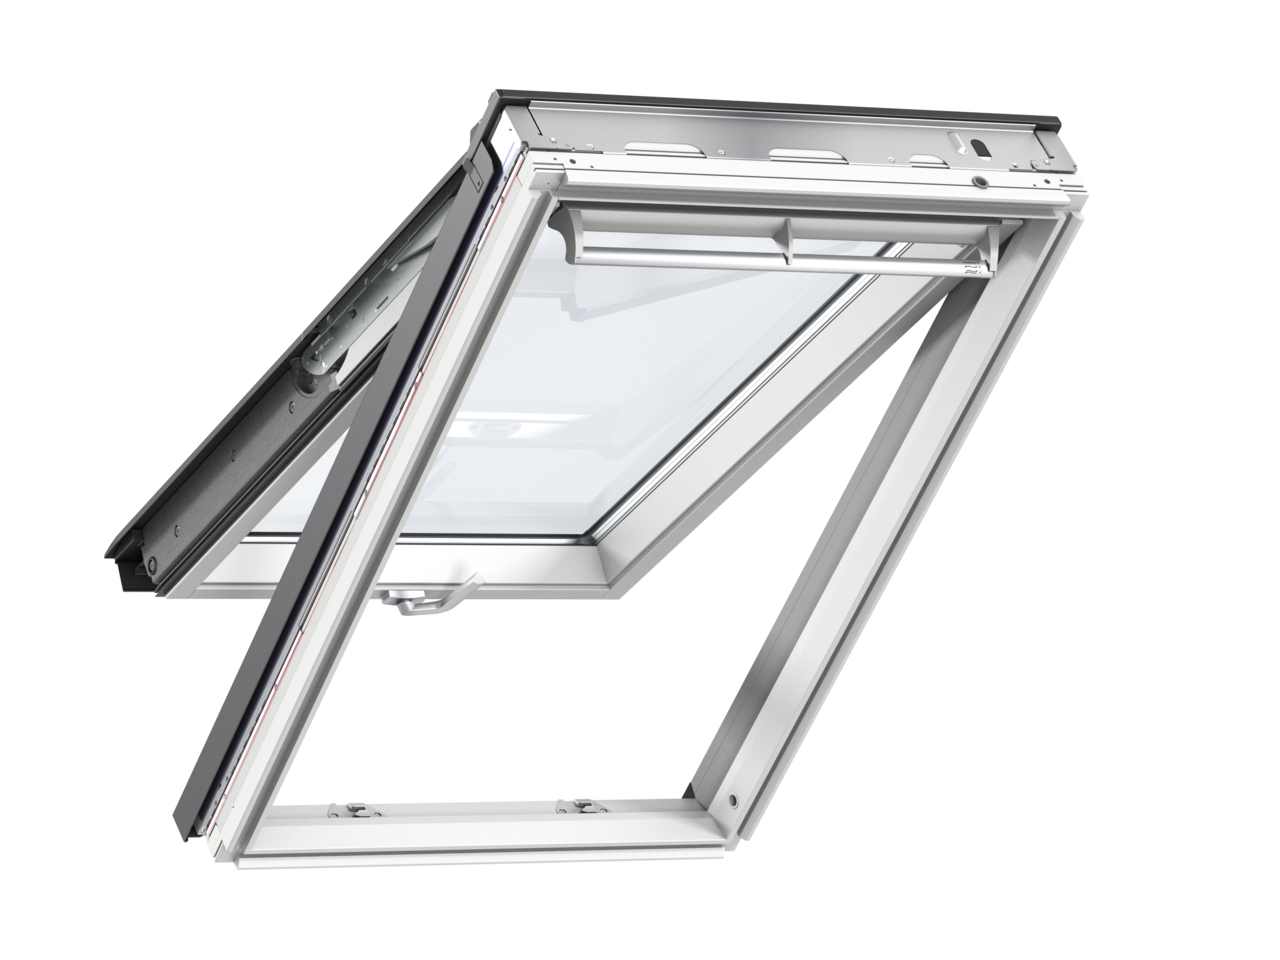 Velux GPL PK08 940 x 1400mm Top Hung Standard 70Pane Roof Window - White Painted